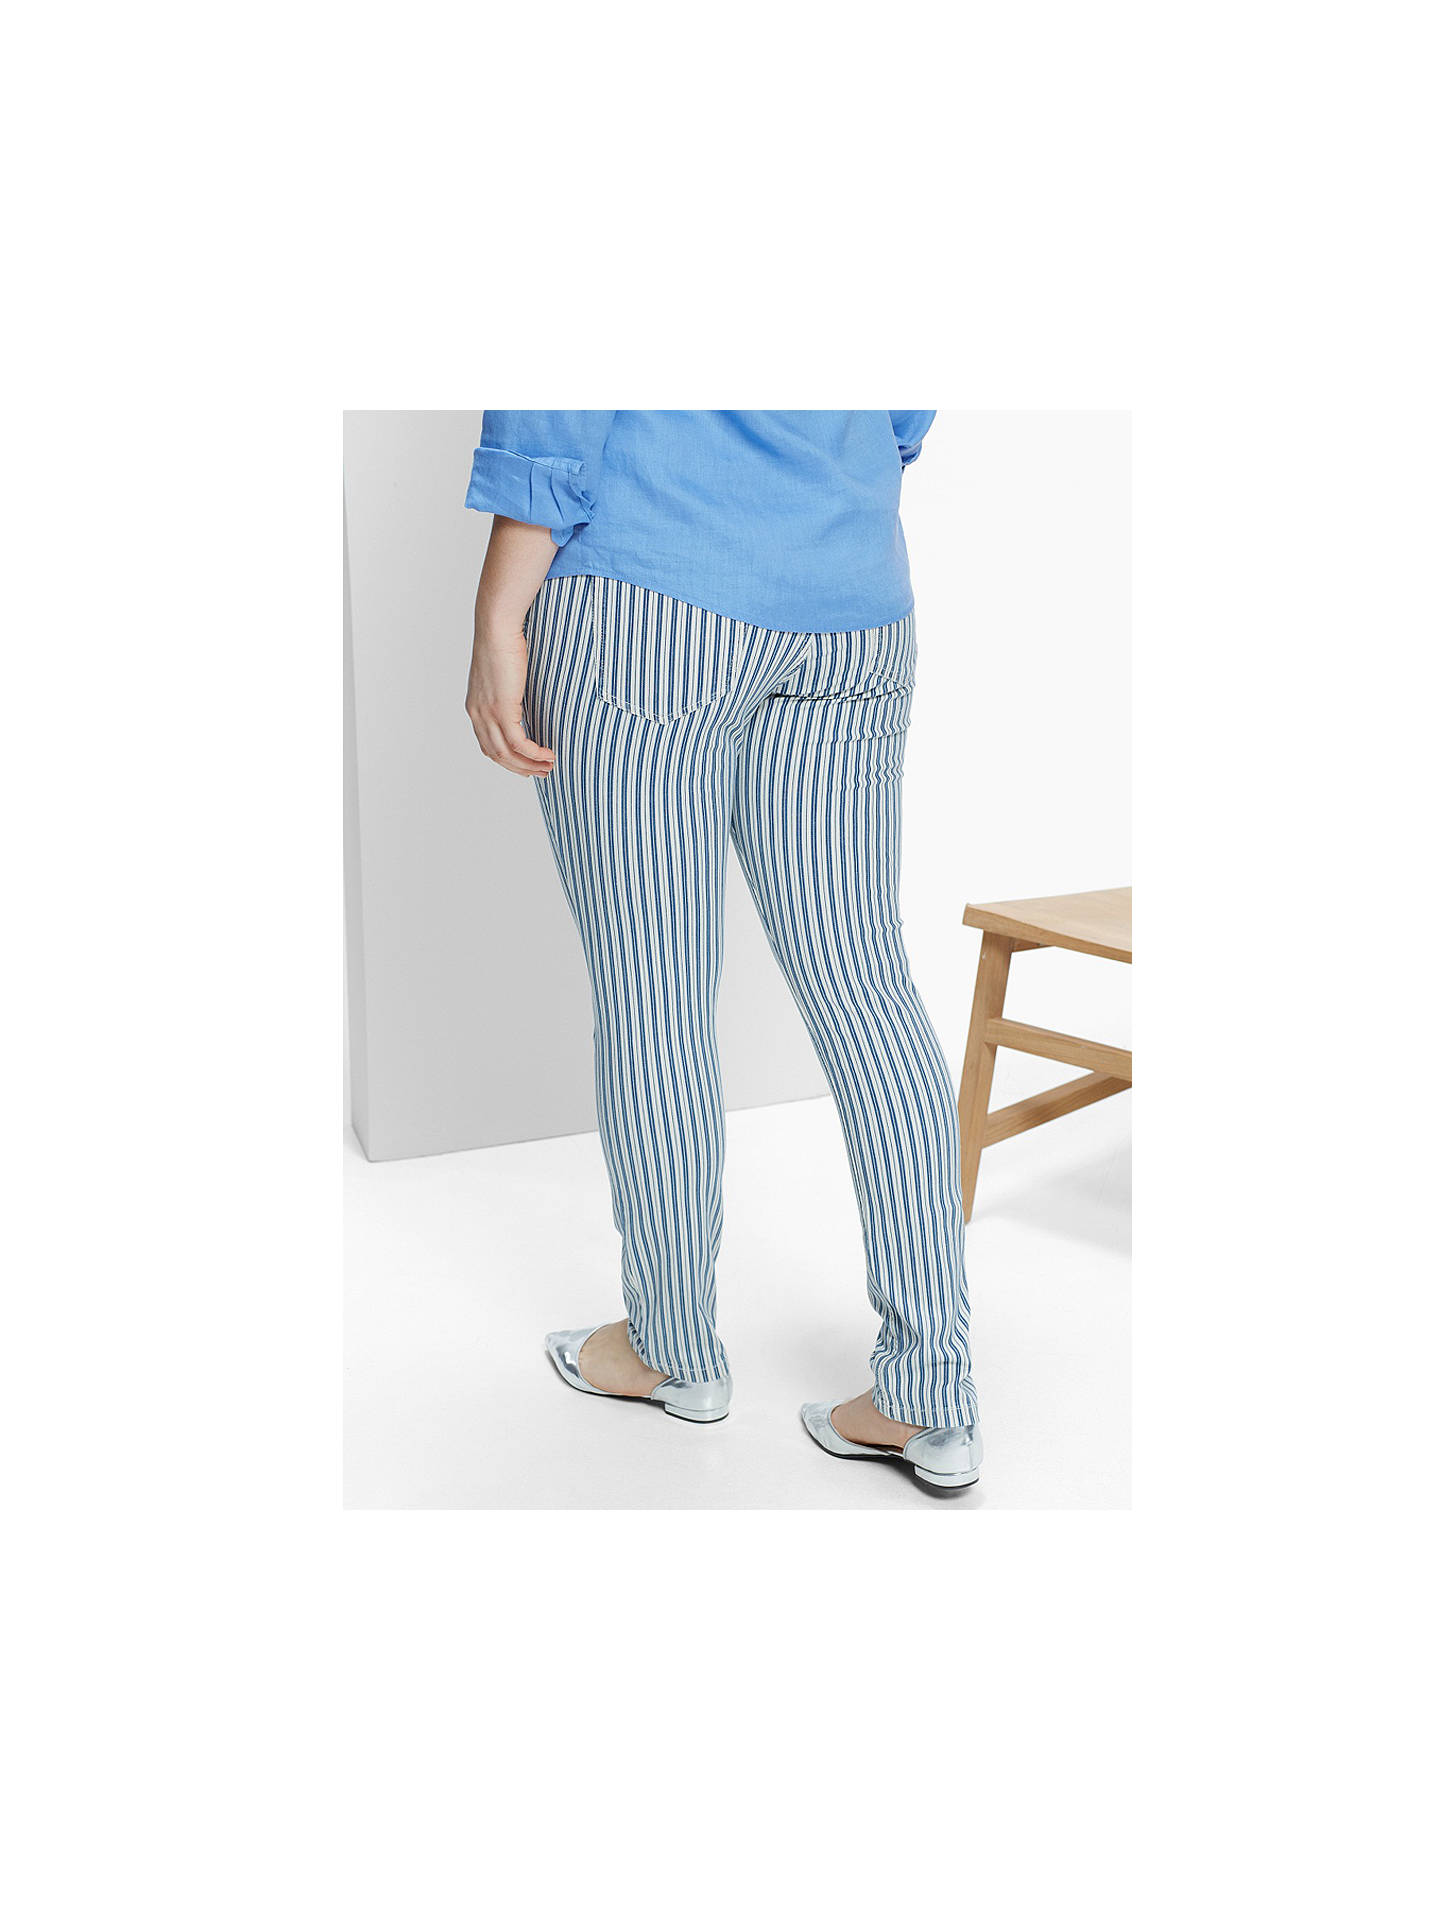 ... BuyVioleta by Mango Super Slim Striped Jeans f188f0cd2